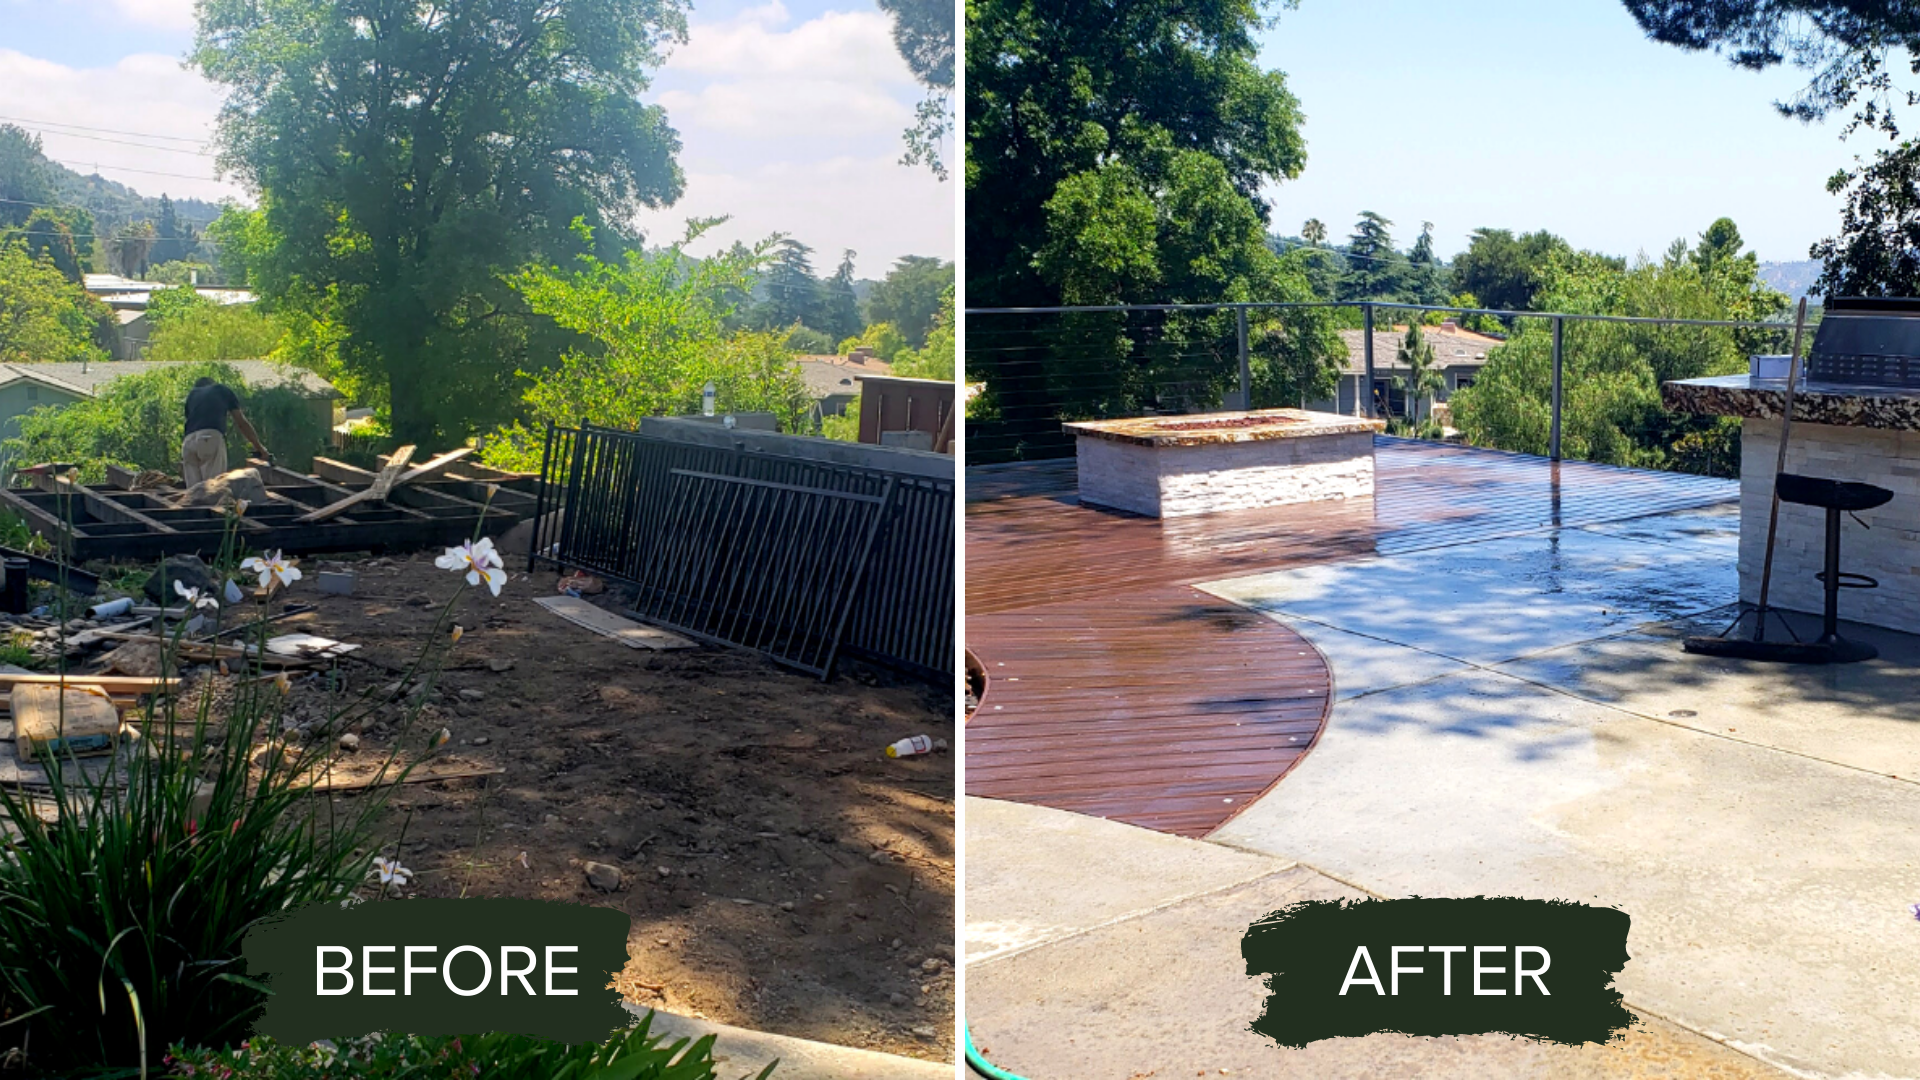 BEFORE AND AFTER DECK BUILDING